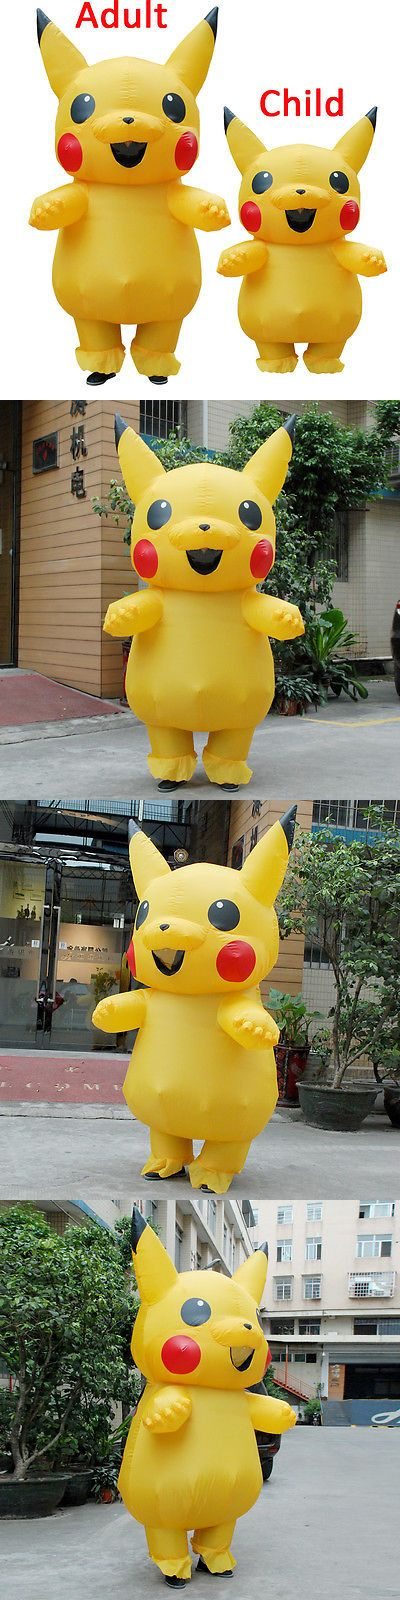 Unisex 86207: Usa Inflatable Pikachu Mascot Costume Pokemon Costumes Adults Kids Outfit Dress -> BUY IT NOW ONLY: $30.99 on eBay!